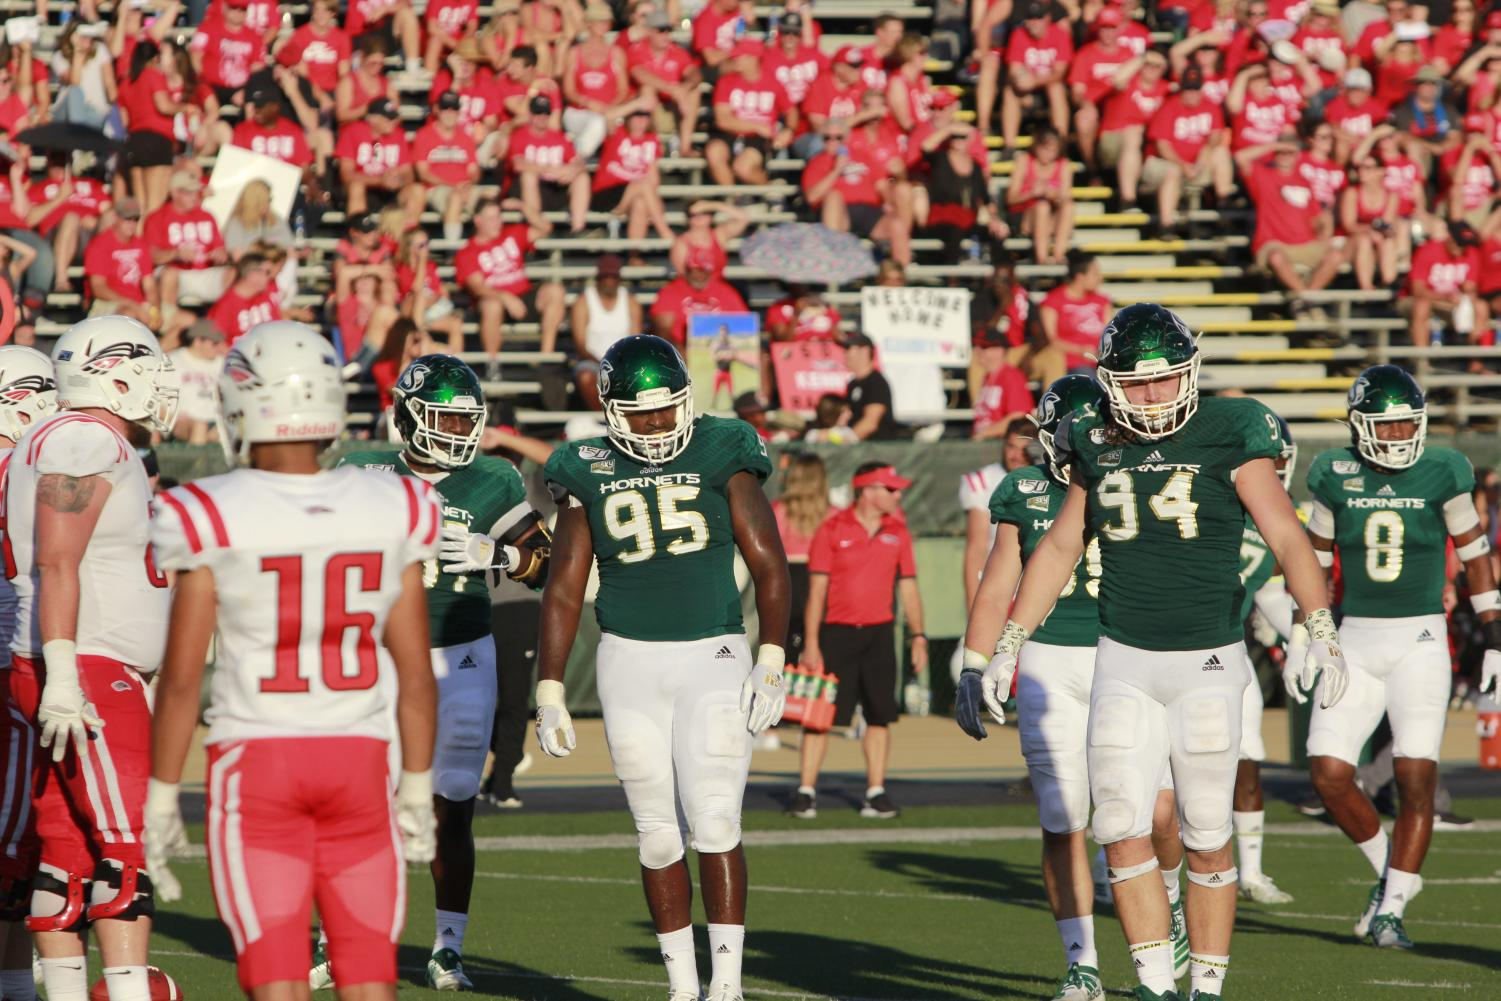 Sac+State+defensive+linemen+senior+Dariyn+Choates+%28%2395%29%2C+junior+Wyatt+Hjelm+%28%2394%29+and+senior+defensive+back+Caelan+Barnes+%28%238%29+along+with+other+members+of+the+defense+look+to+the+sideline+for+a+play+call+against+Southern+Oregon+on+Saturday%2C+August+31%2C+at+Hornet+Stadium.+The+three+players+combined+for+five+total+tackles.